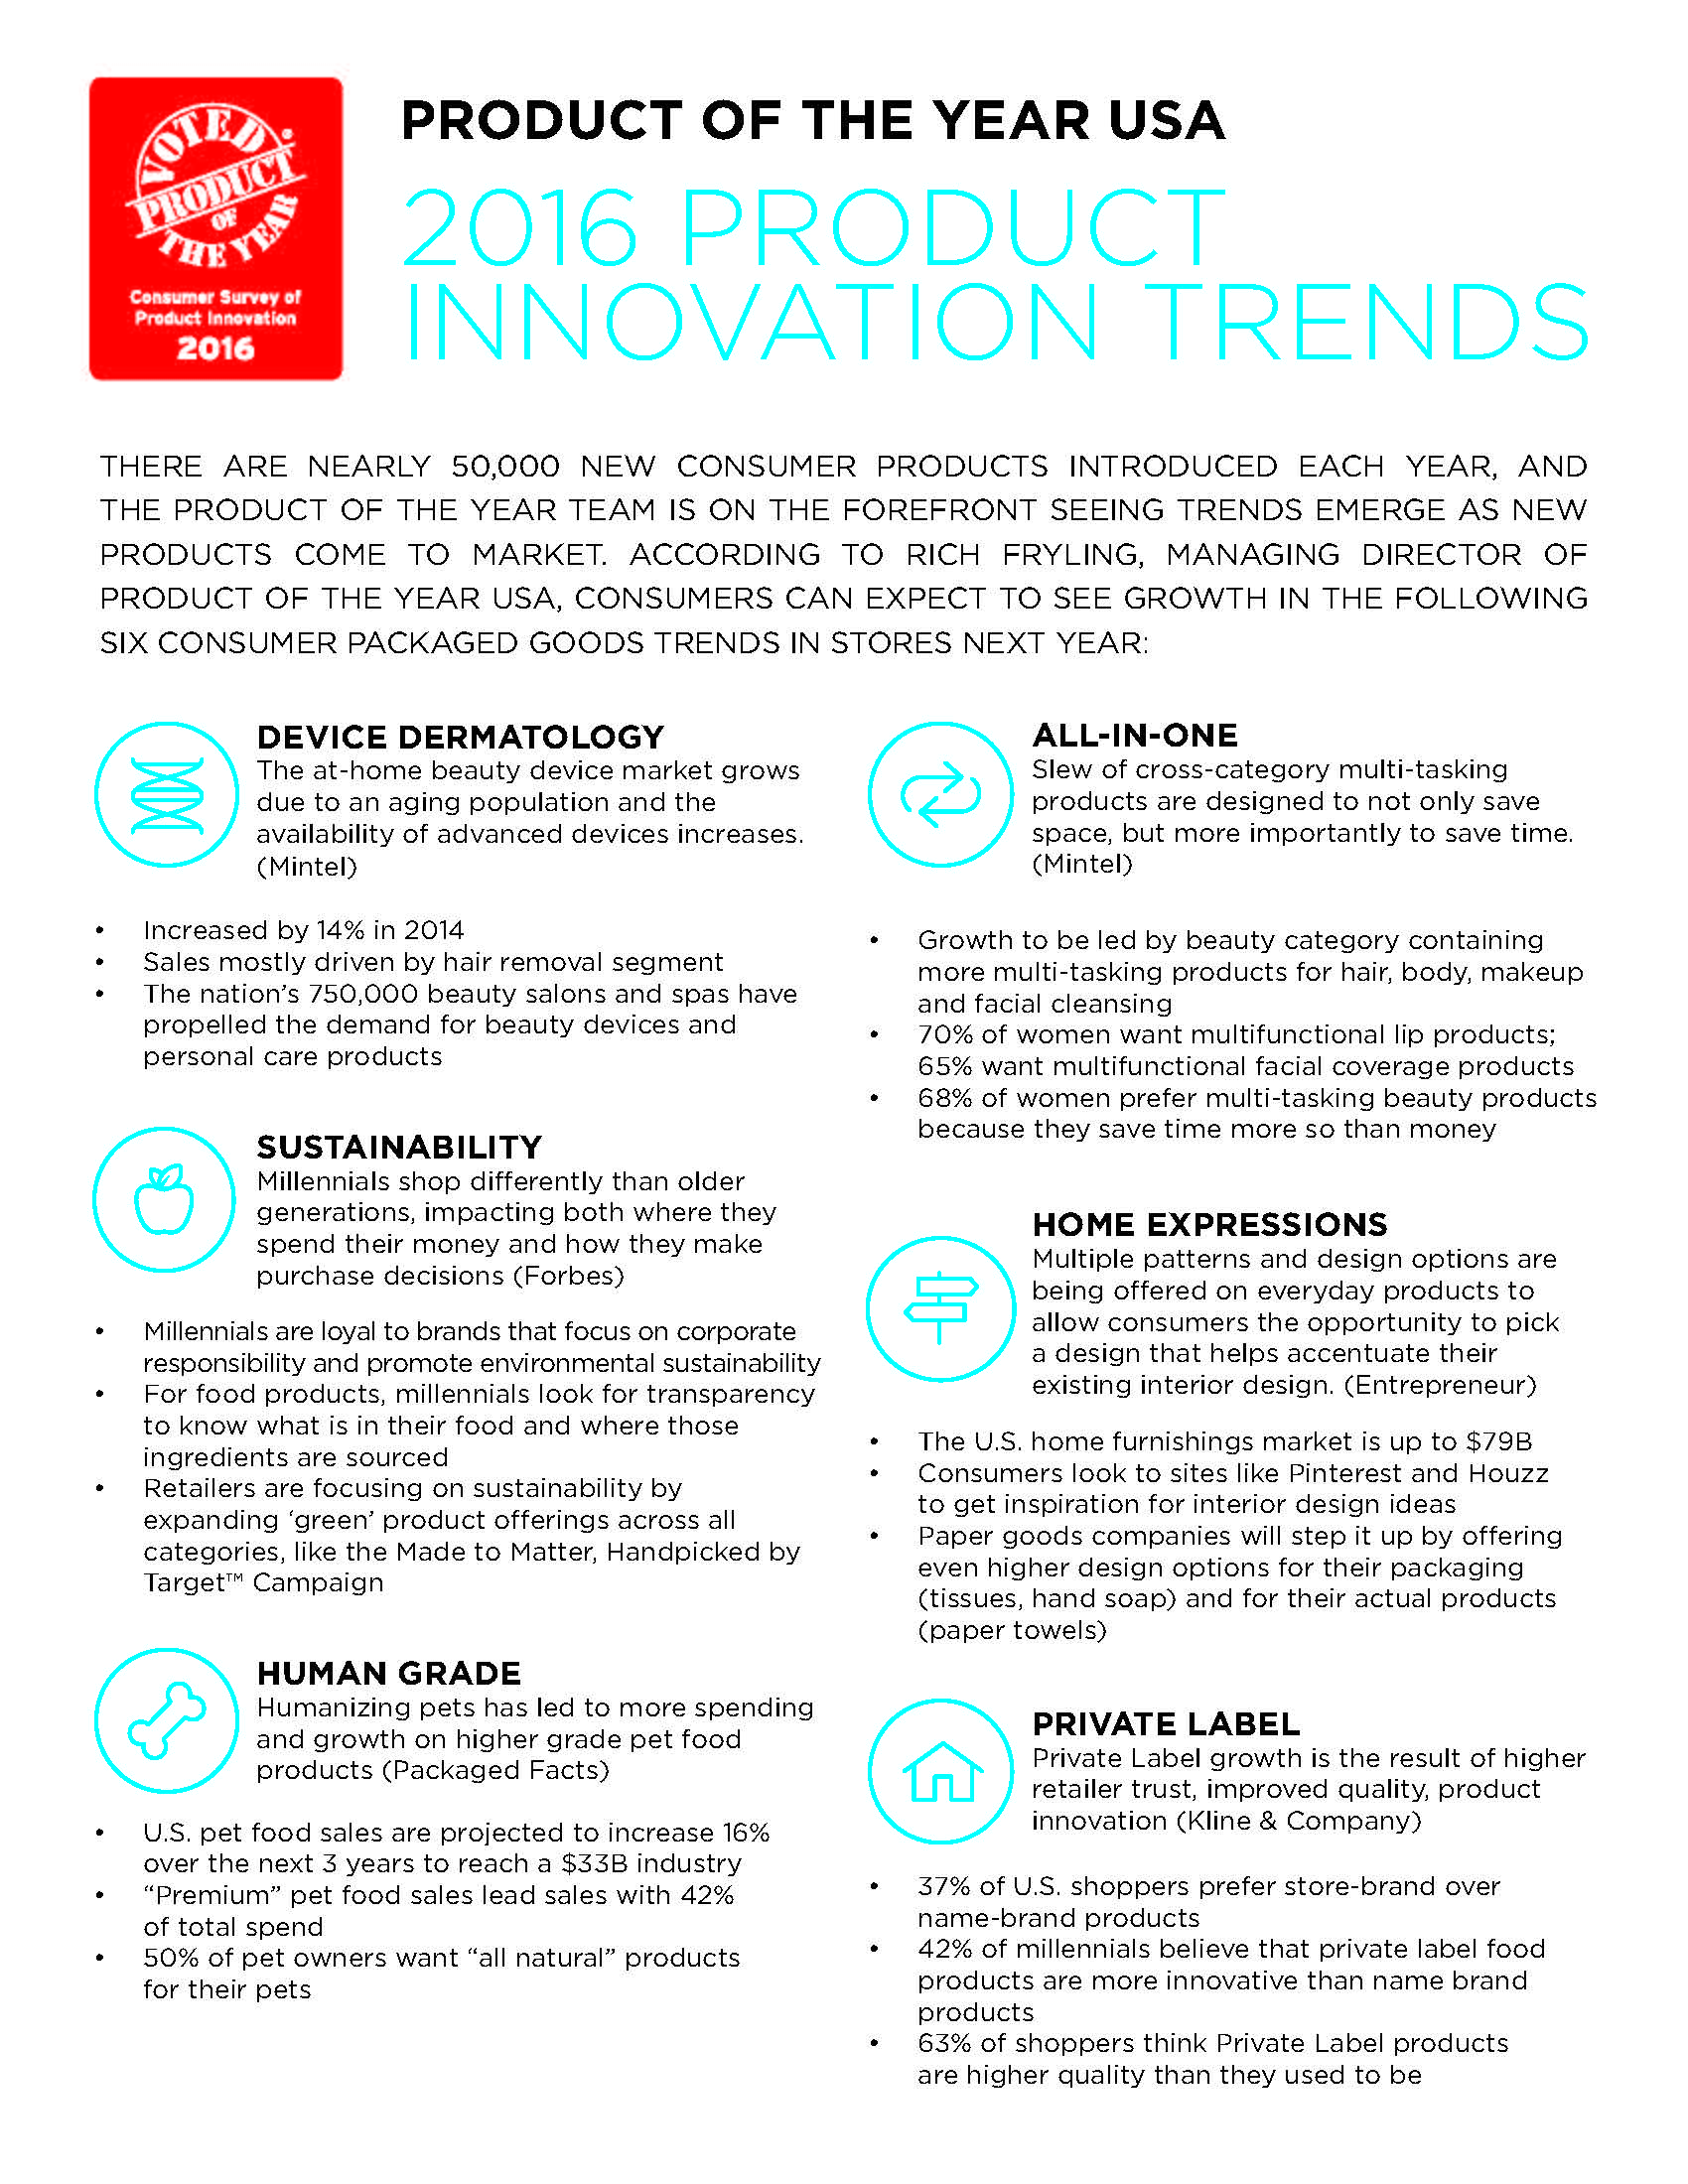 POY - 2016 Product Innovation Trends copy